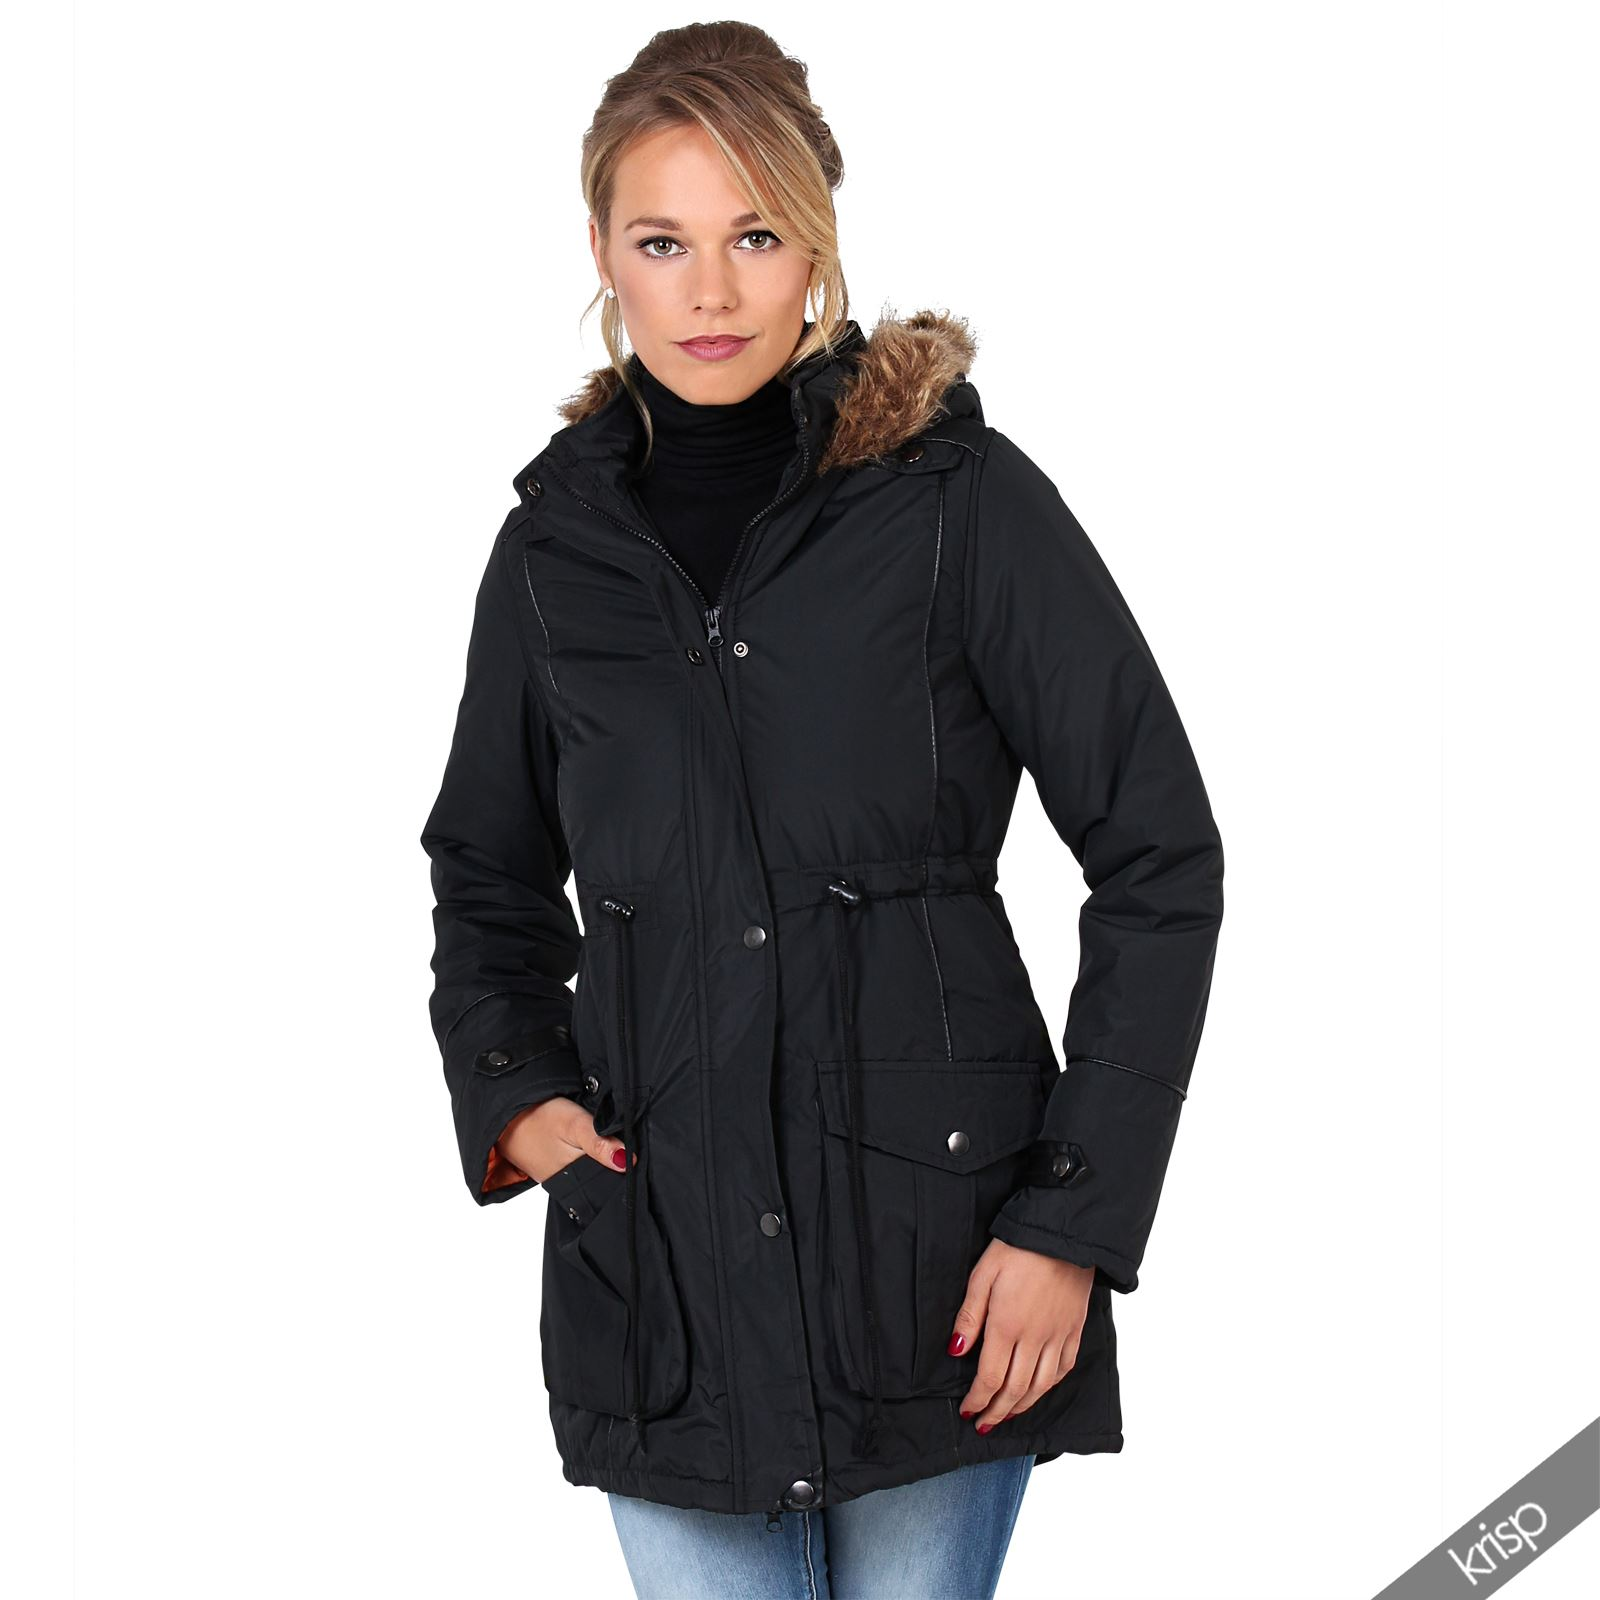 Women's Leather Coats are classic additions to your outerwear collection. Shop Kohl's for all your coat and jacket needs and get ready for whatever weather comes your way! Kohl's selection of leather jackets includes many different styles your're sure to love.